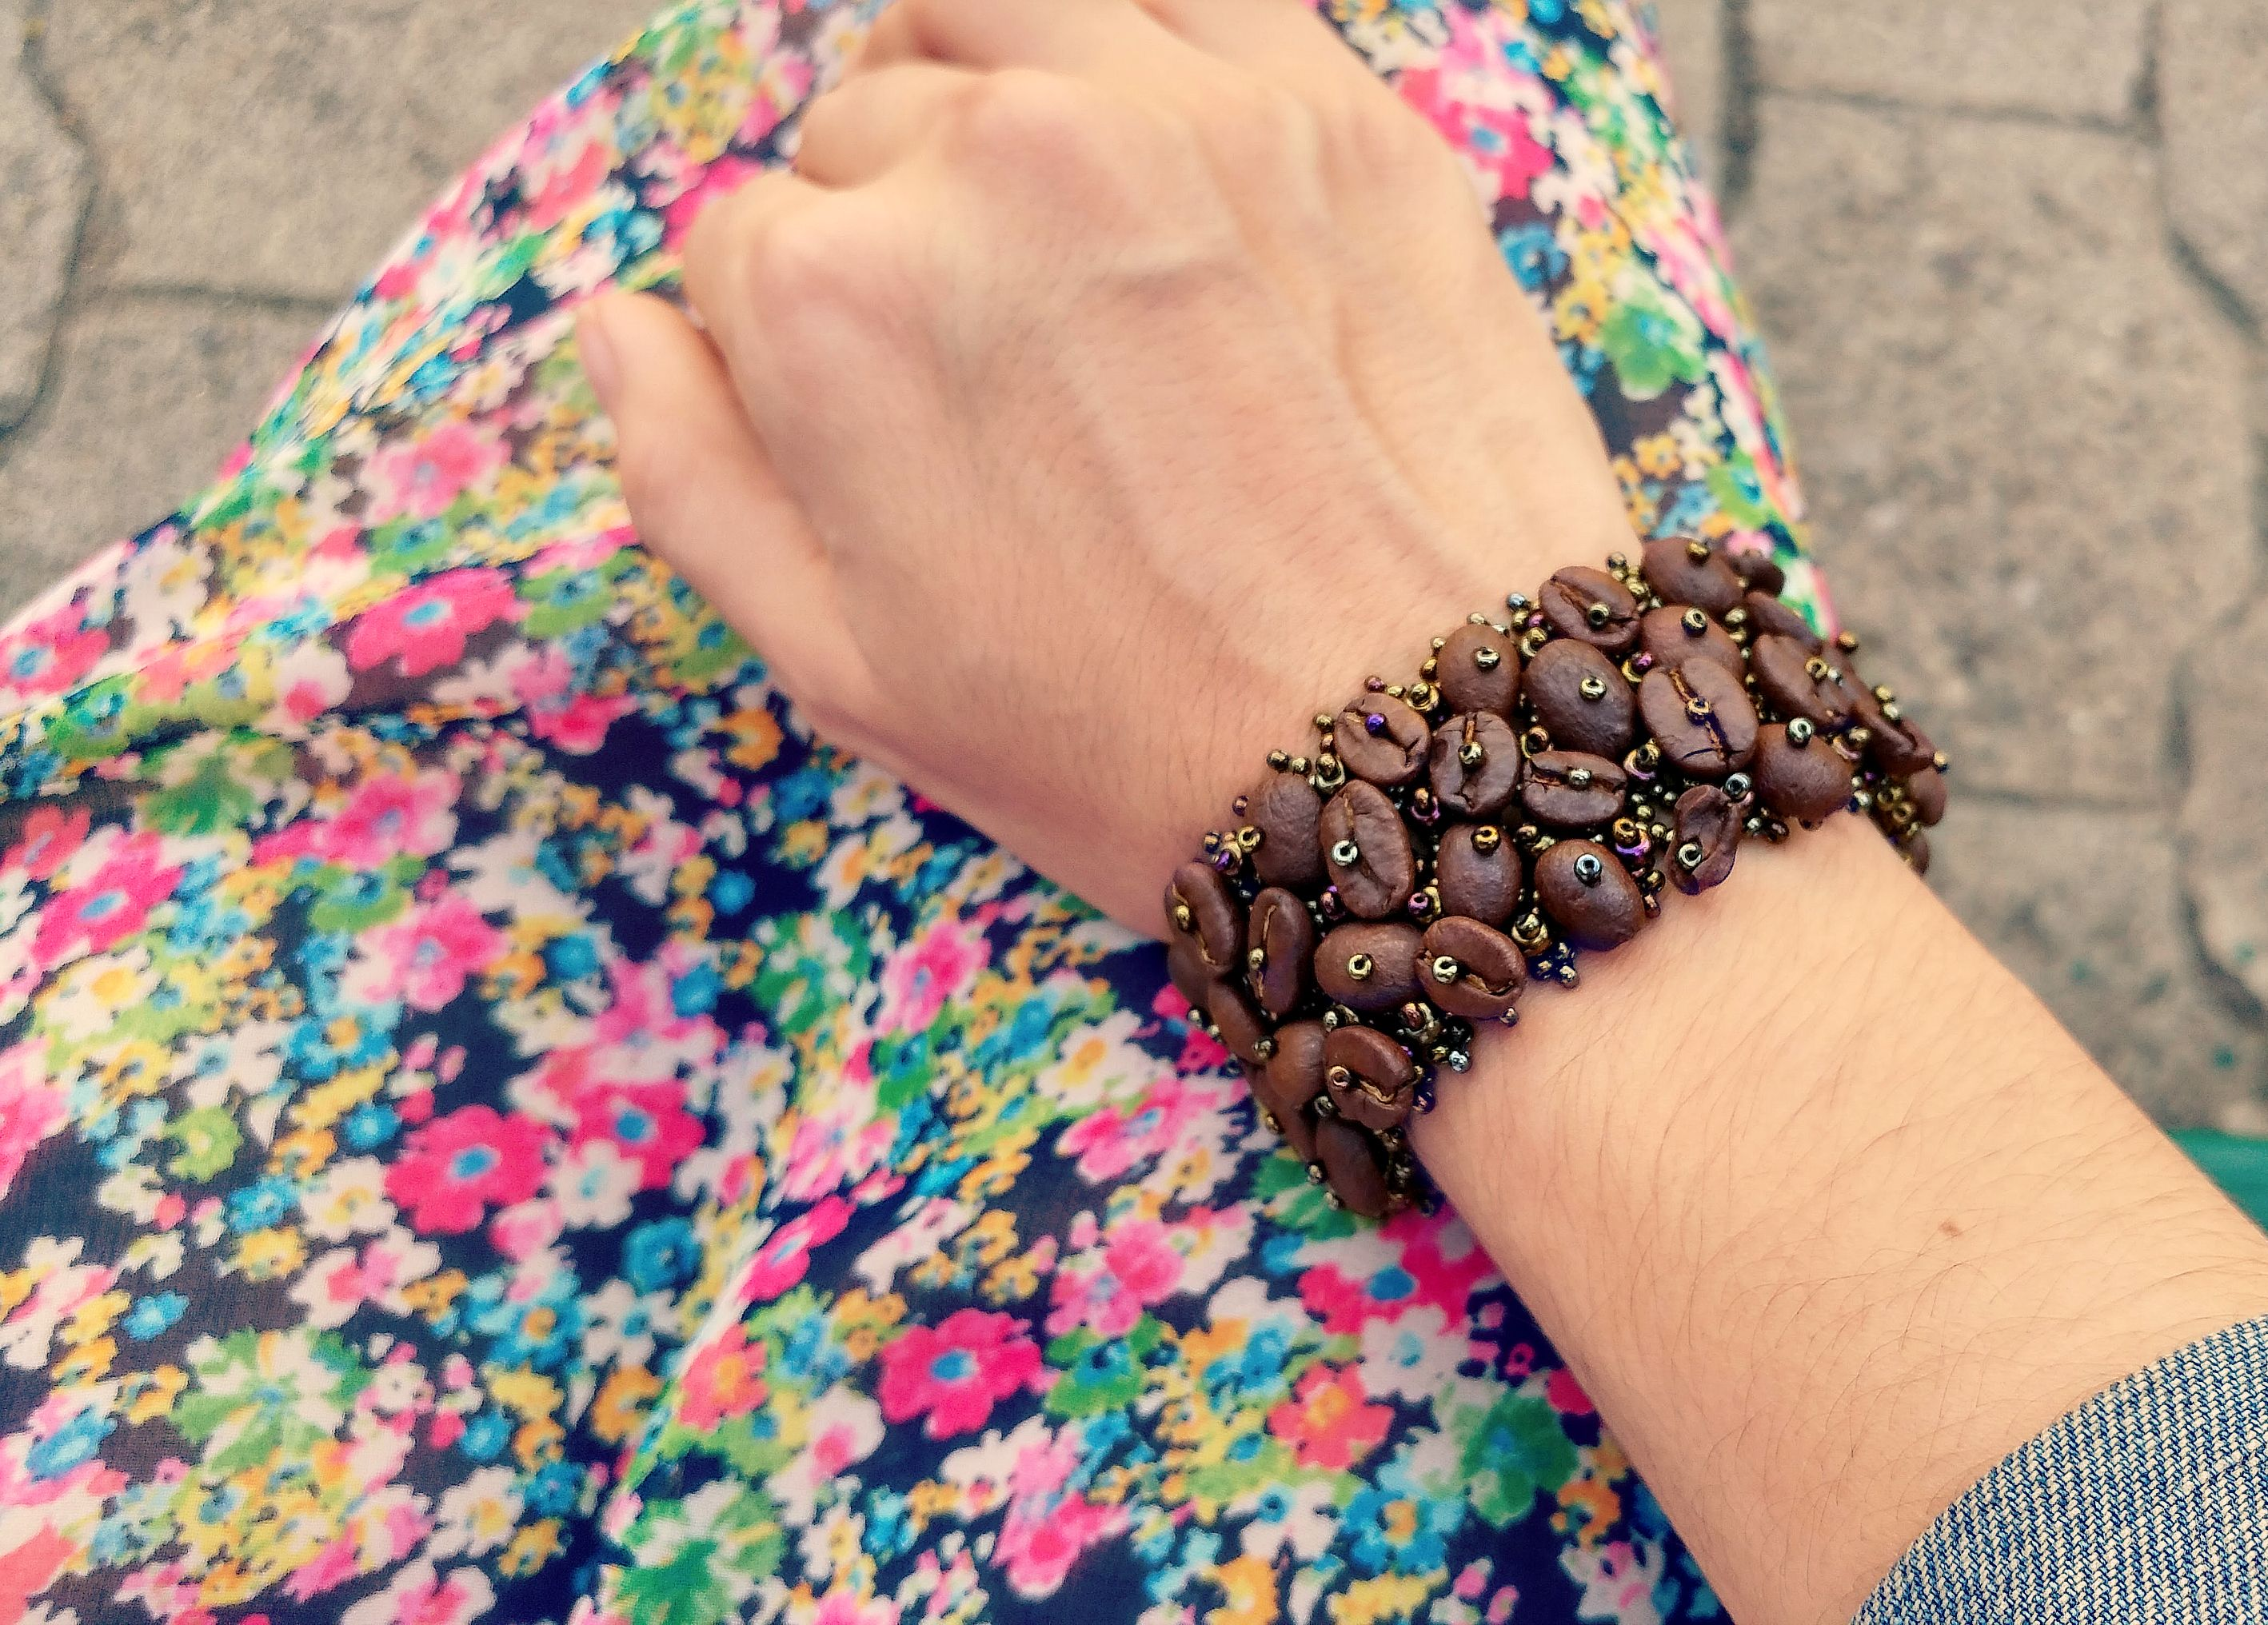 For all the coffee lovers around the world, beautiful bohemian bracelets handmade with real coffee beans from Guatemala.